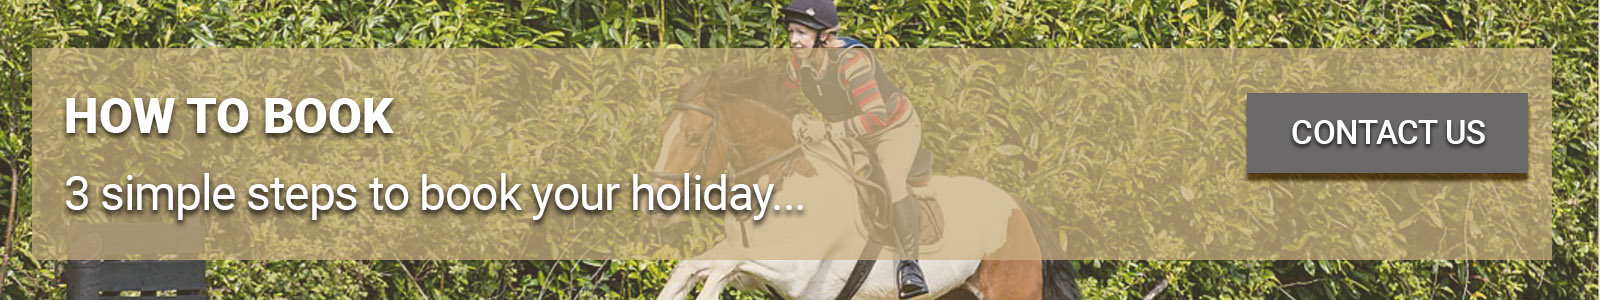 Bel-Air Equestrian How to Book